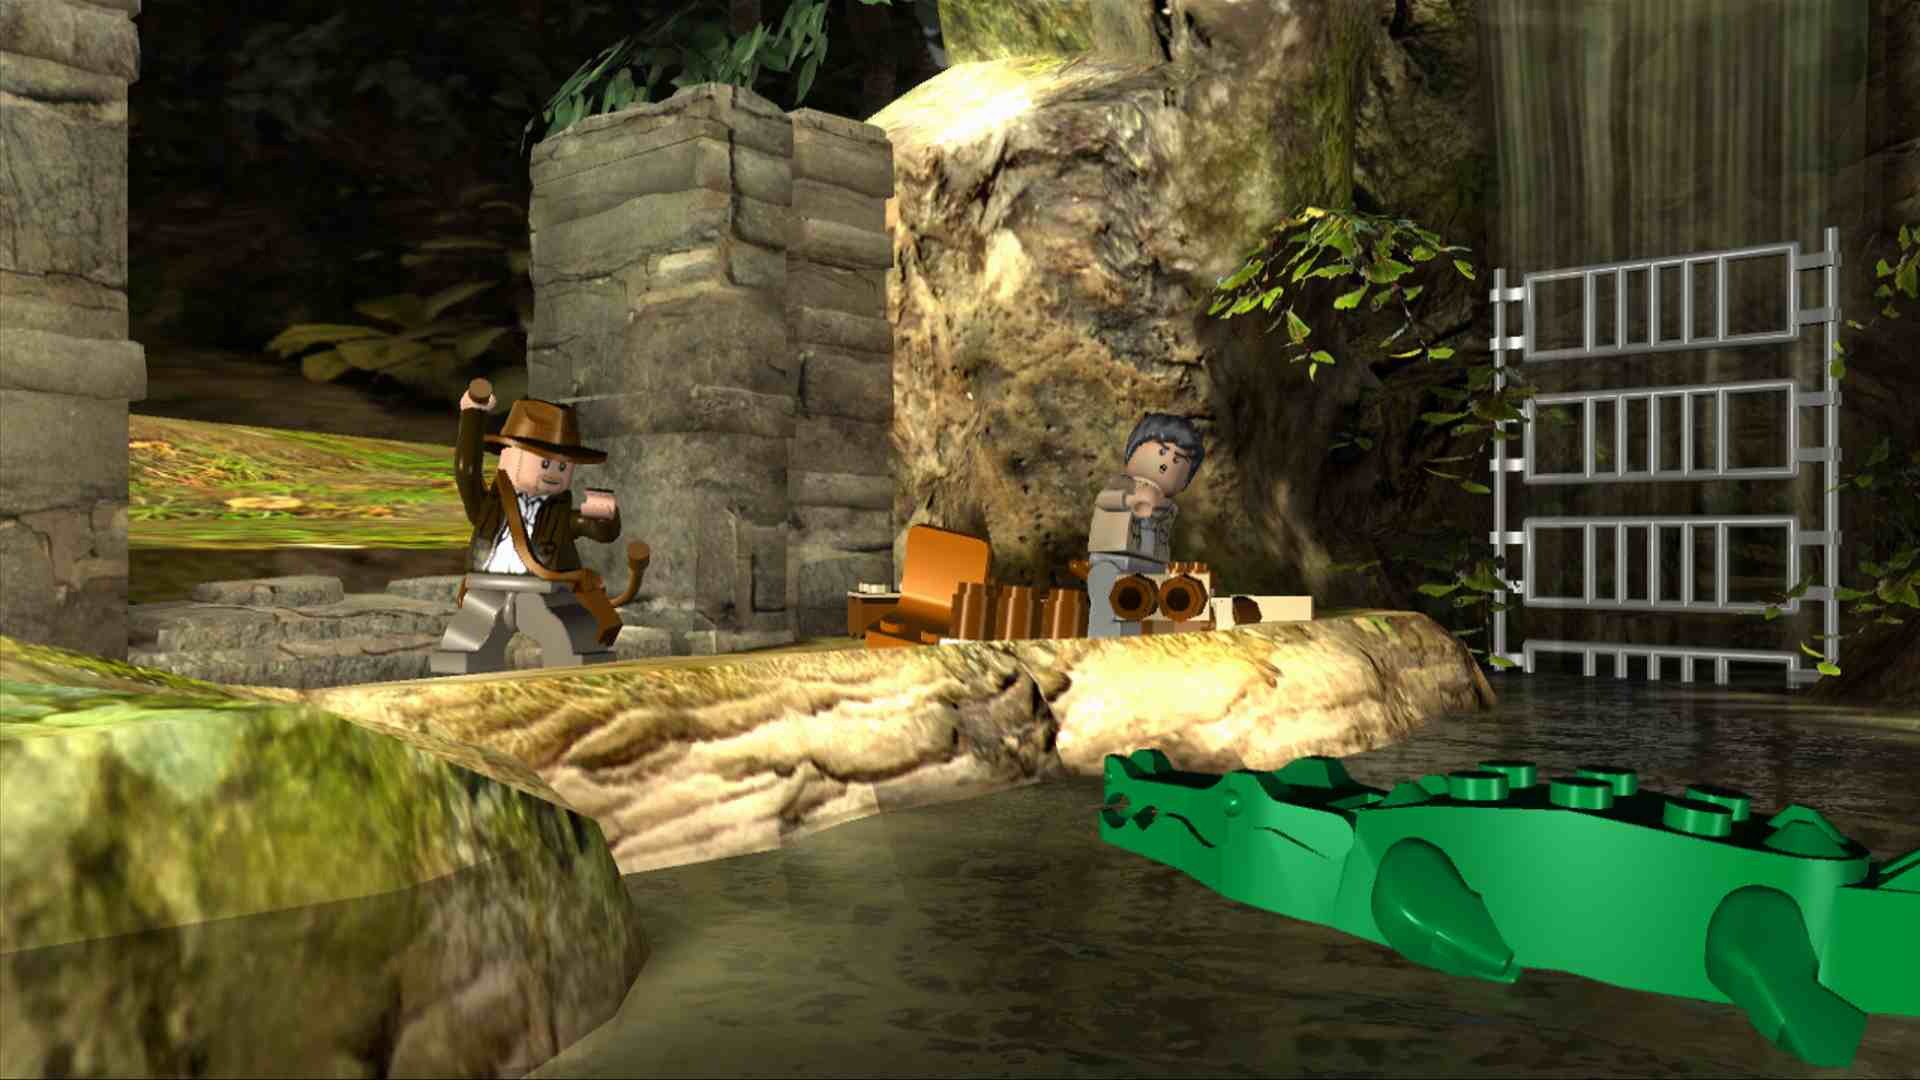 LEGO Indiana Jones: The Original Adventures - 24451